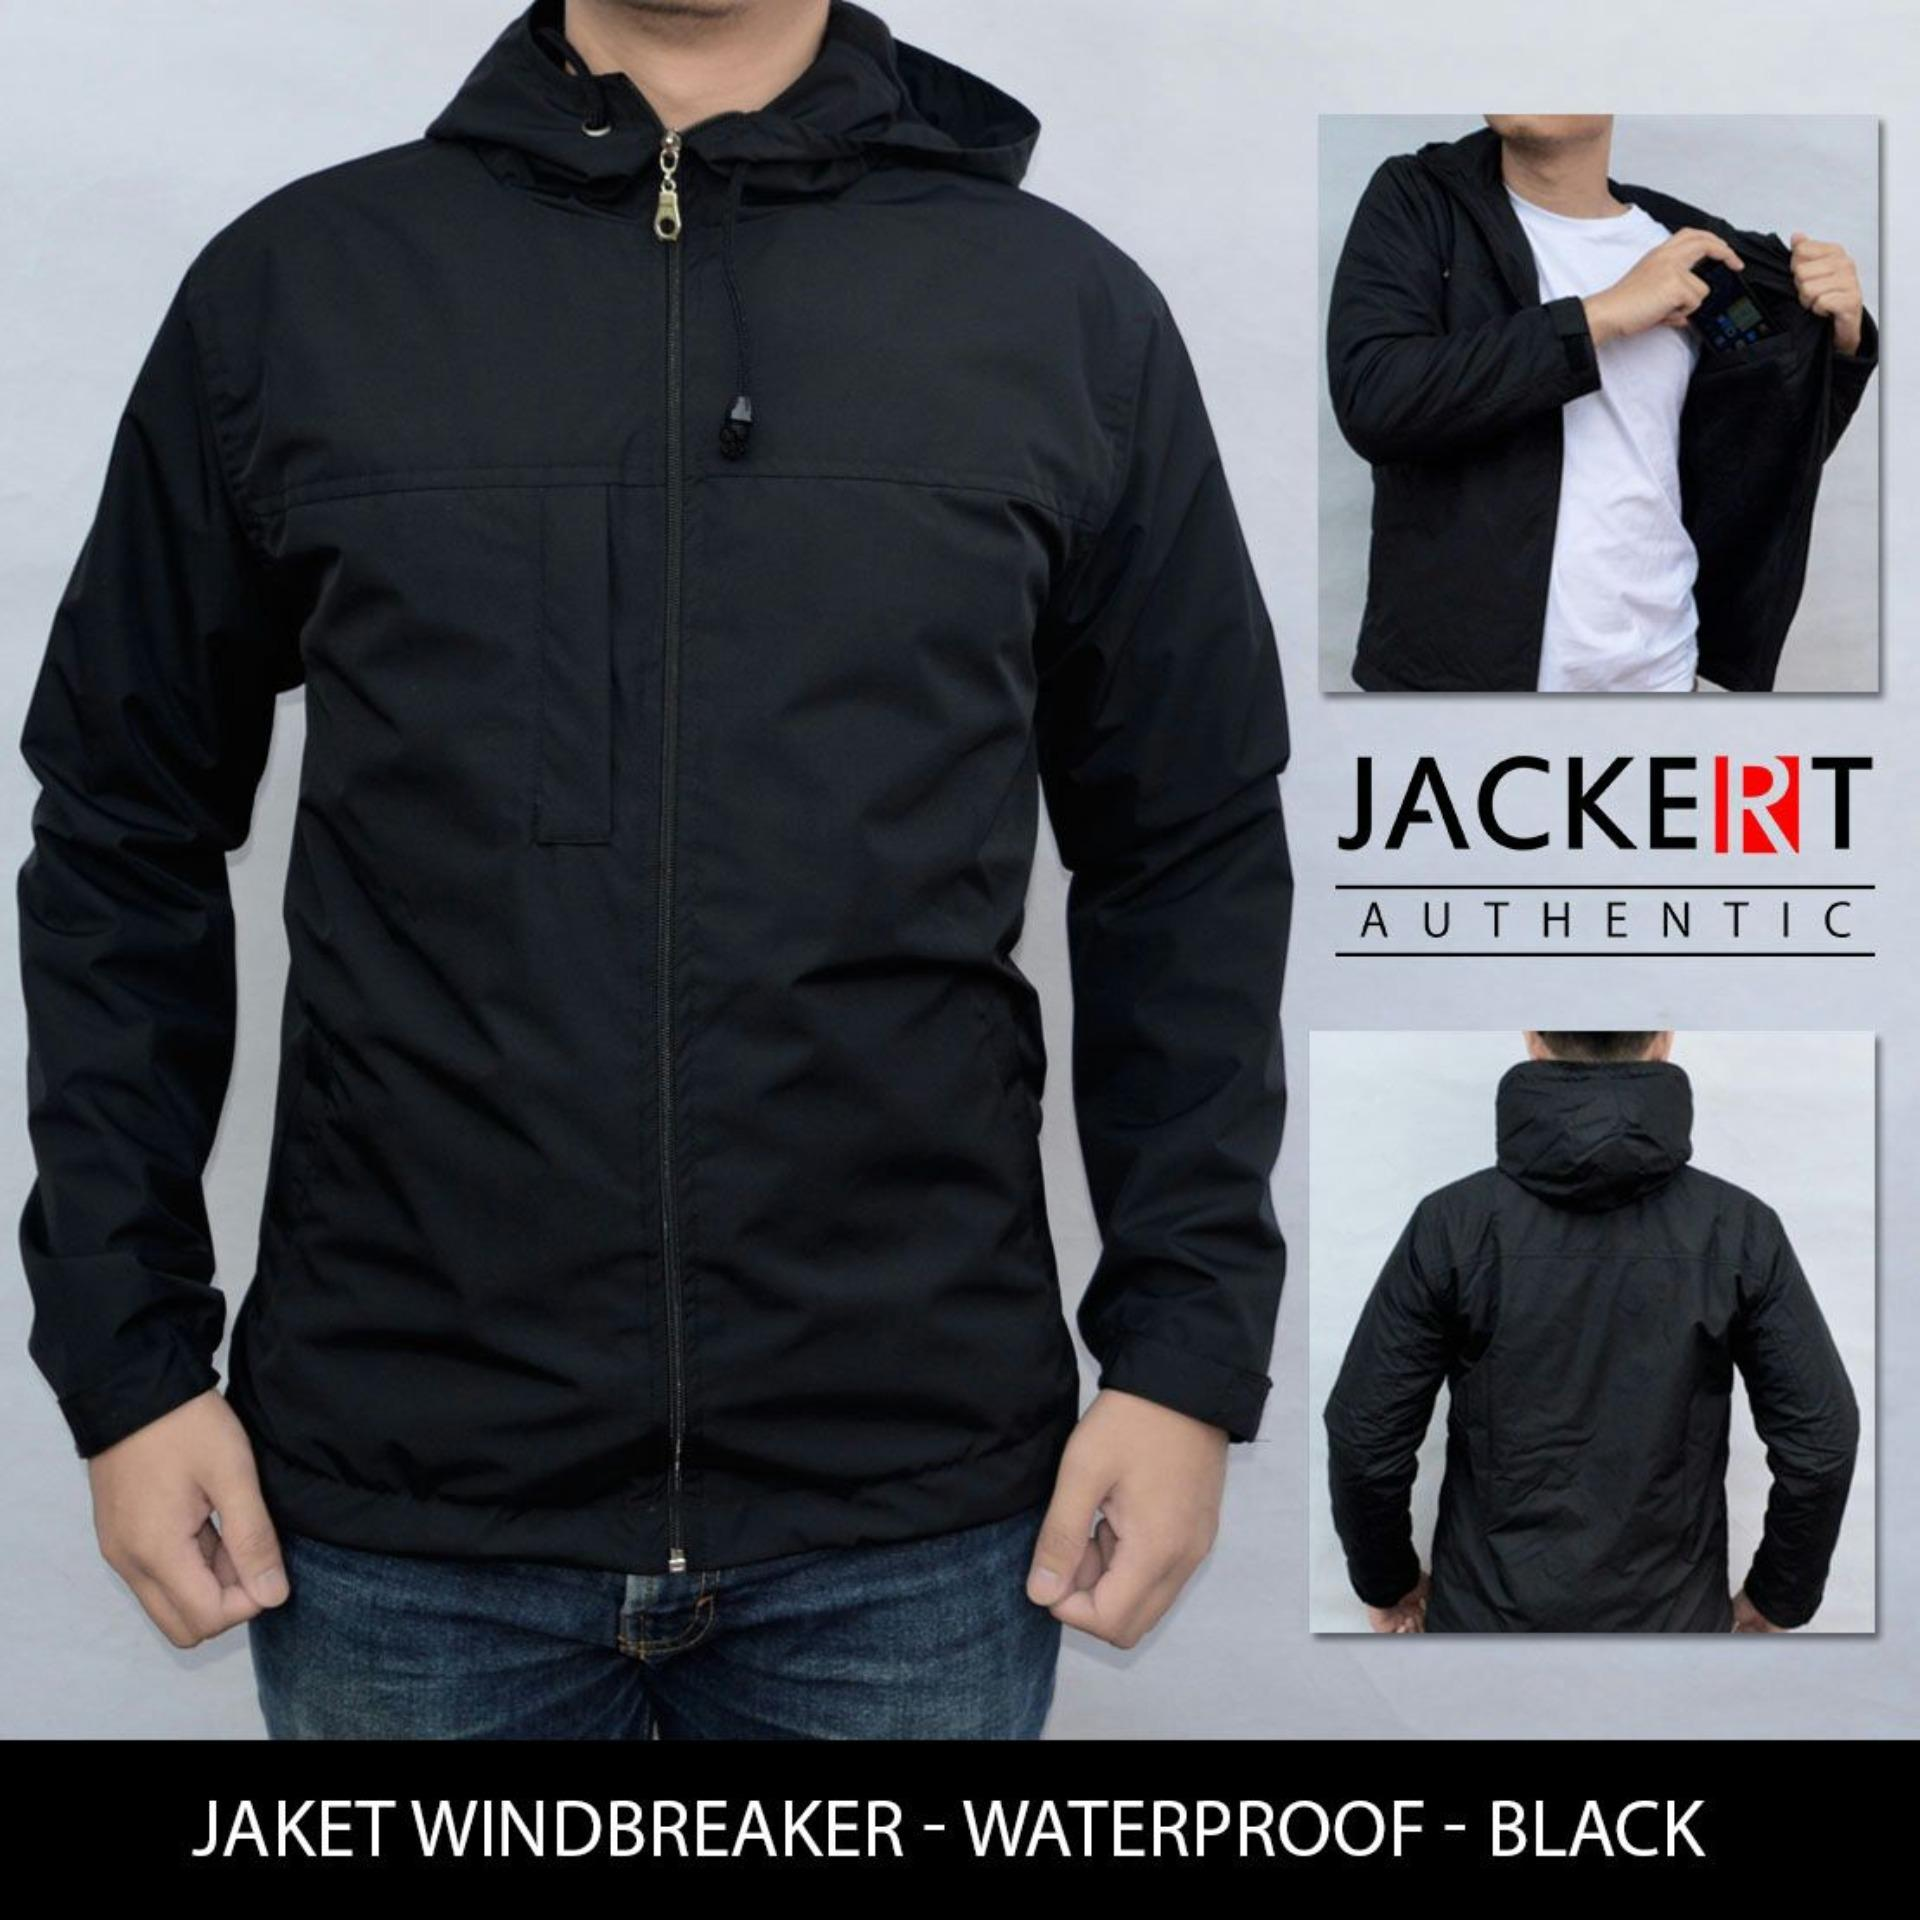 Beli Jaket Motor Harian Model Simple Polos Hitam Waterproof Semi Outdoor Jackert Asli